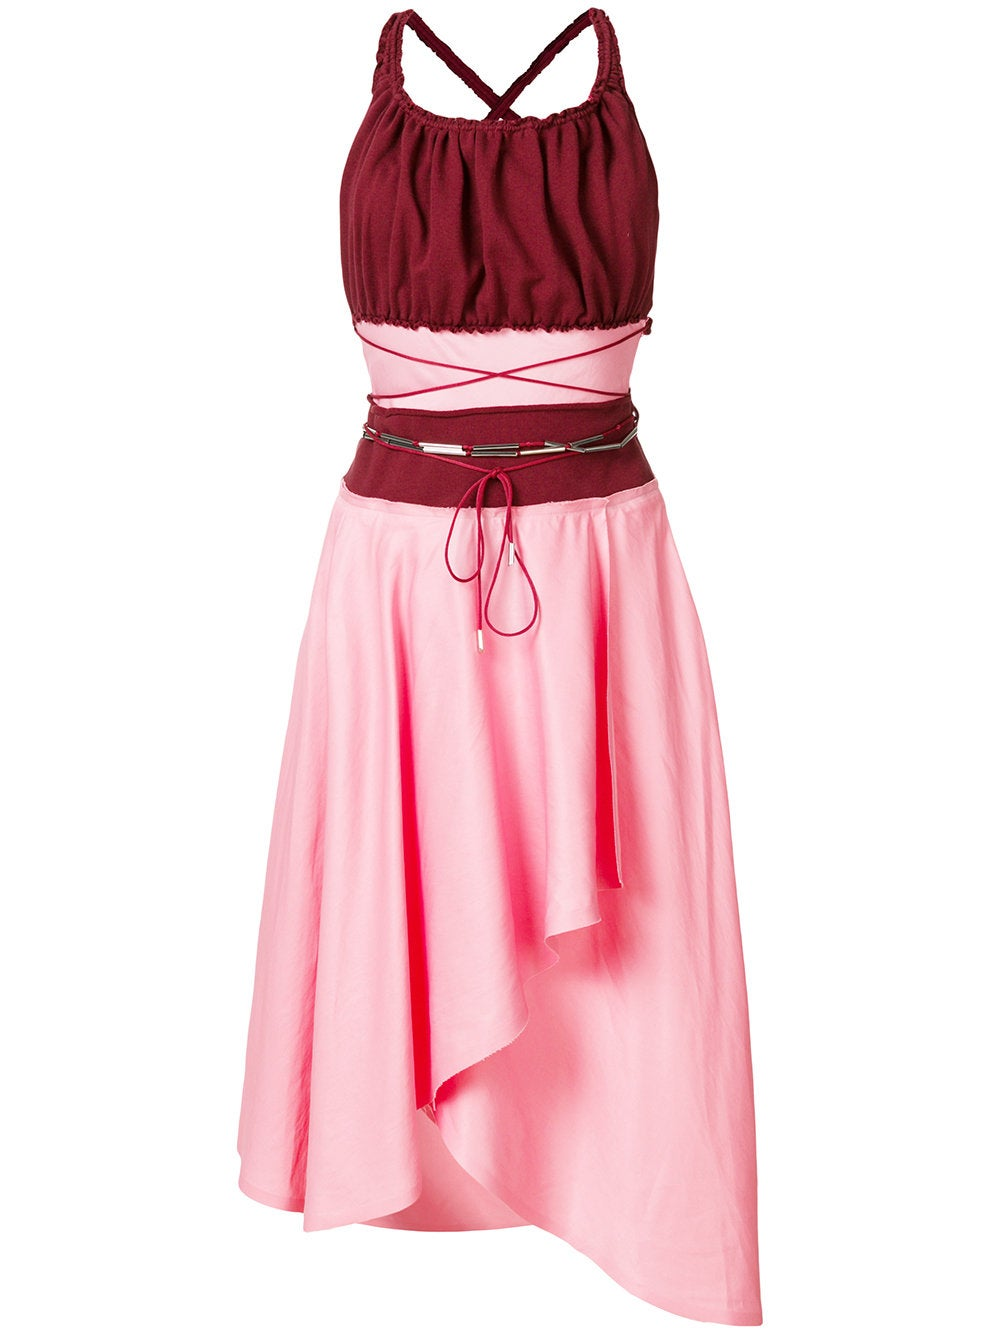 Pink & Red Gathered Bodice Belted Dress